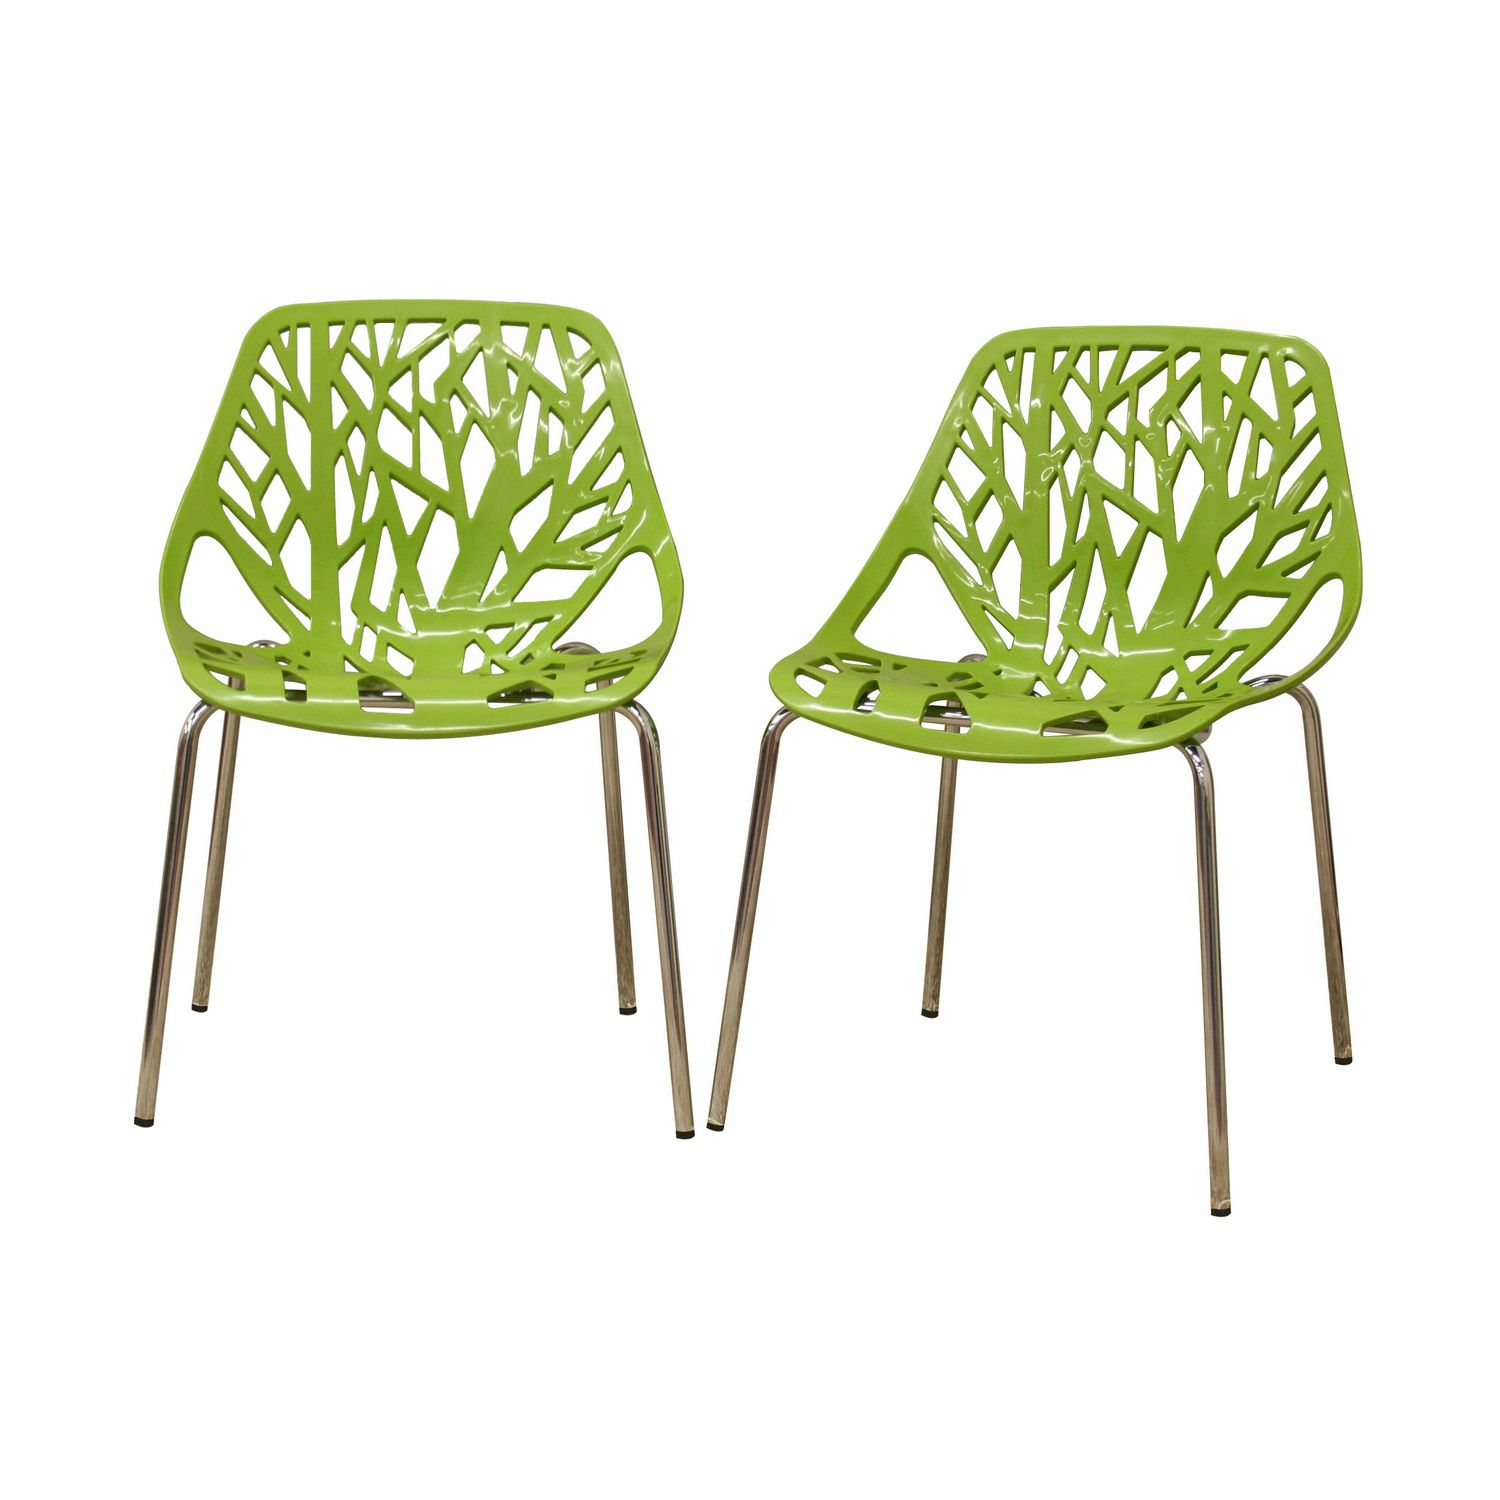 green kitchen chairs remodeling on a budget baxton studio birch sapling plastic modern dining